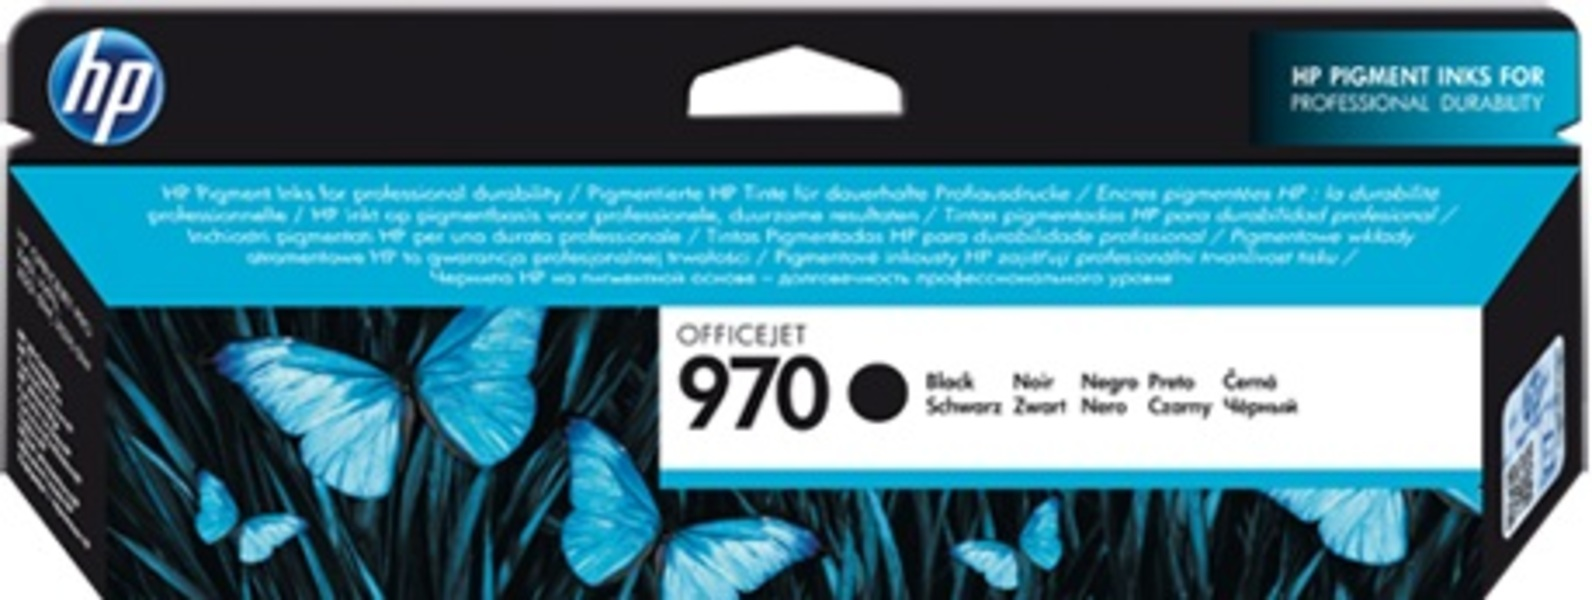 HP 970 Black Ink Cartridge CN621AE